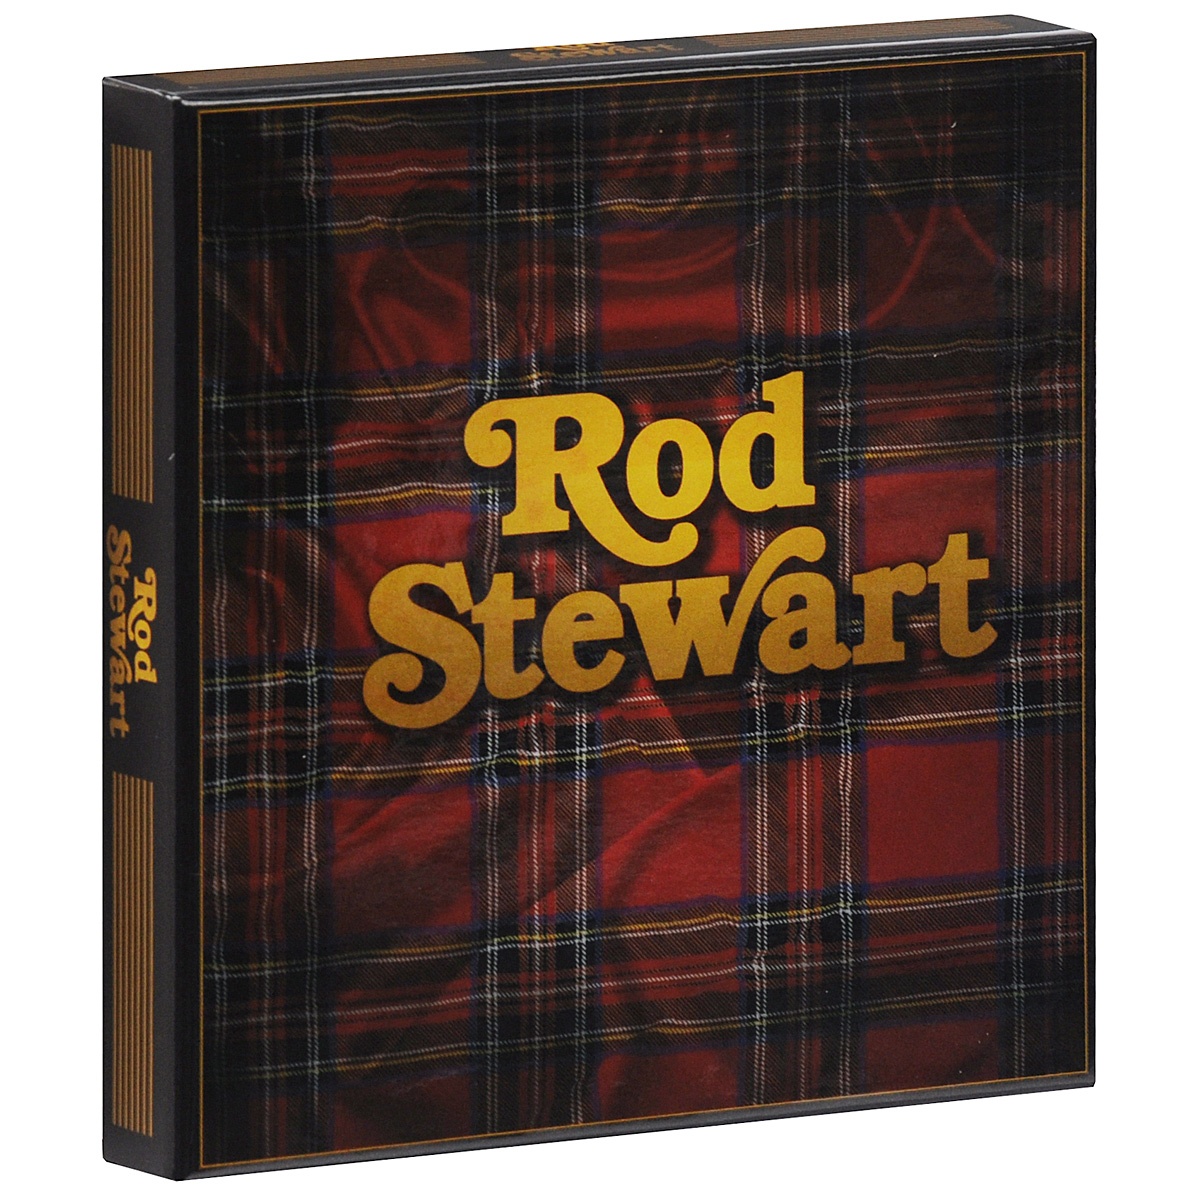 Род Стюарт Rod Stewart. Rod Stewart (5 CD) free shipping mpc 702h 2pcs casting rod 24t im6 carbon fishing rod legend 702 casting fishing rods 2 10m dual tips h power